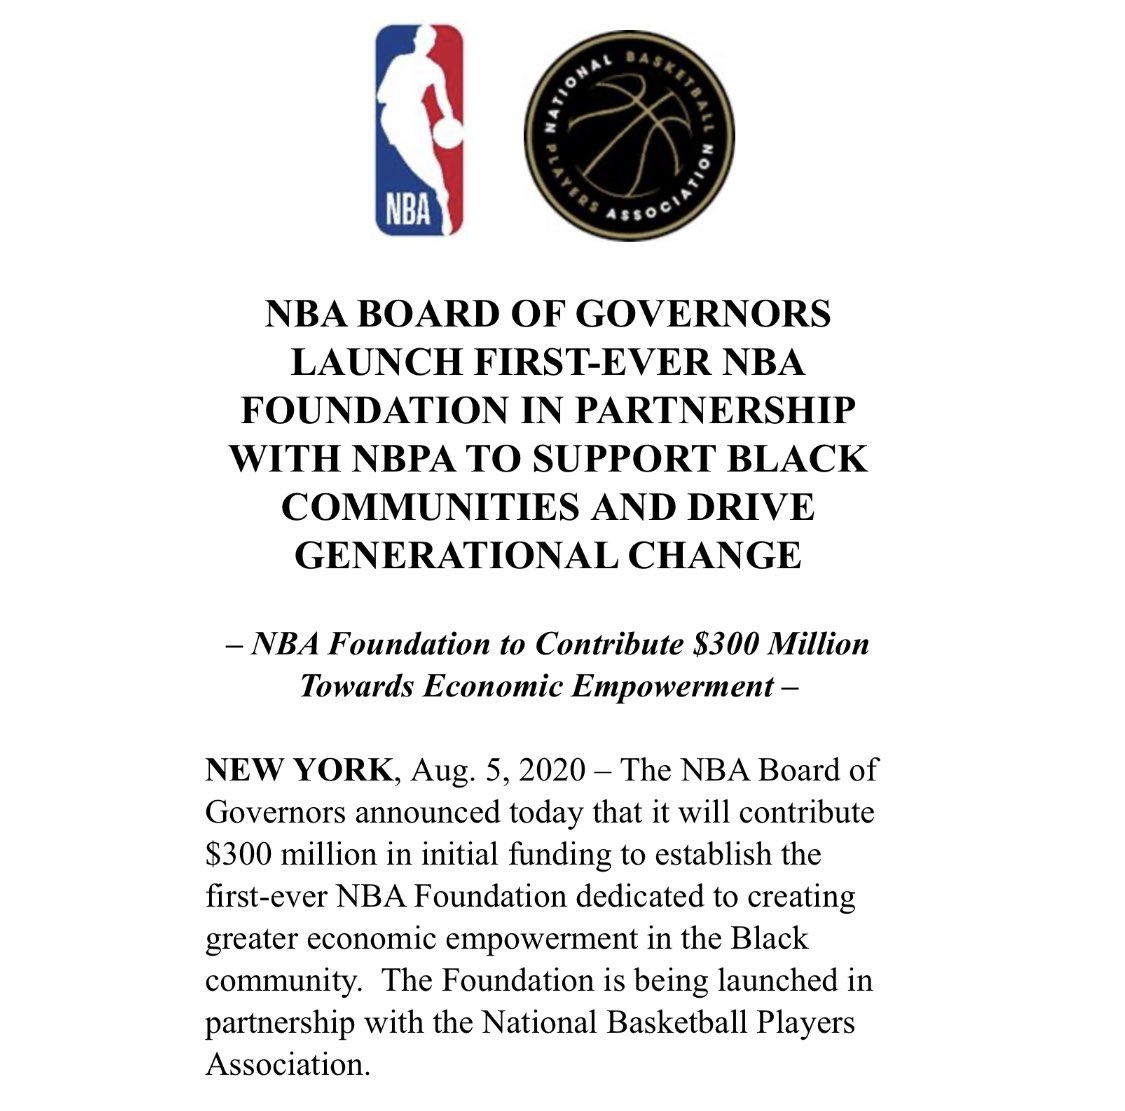 Big news from the NBA & NBPA, pledging $300 million towards economic empowerment in the Black community. https://t.co/kqgAOZHvPu